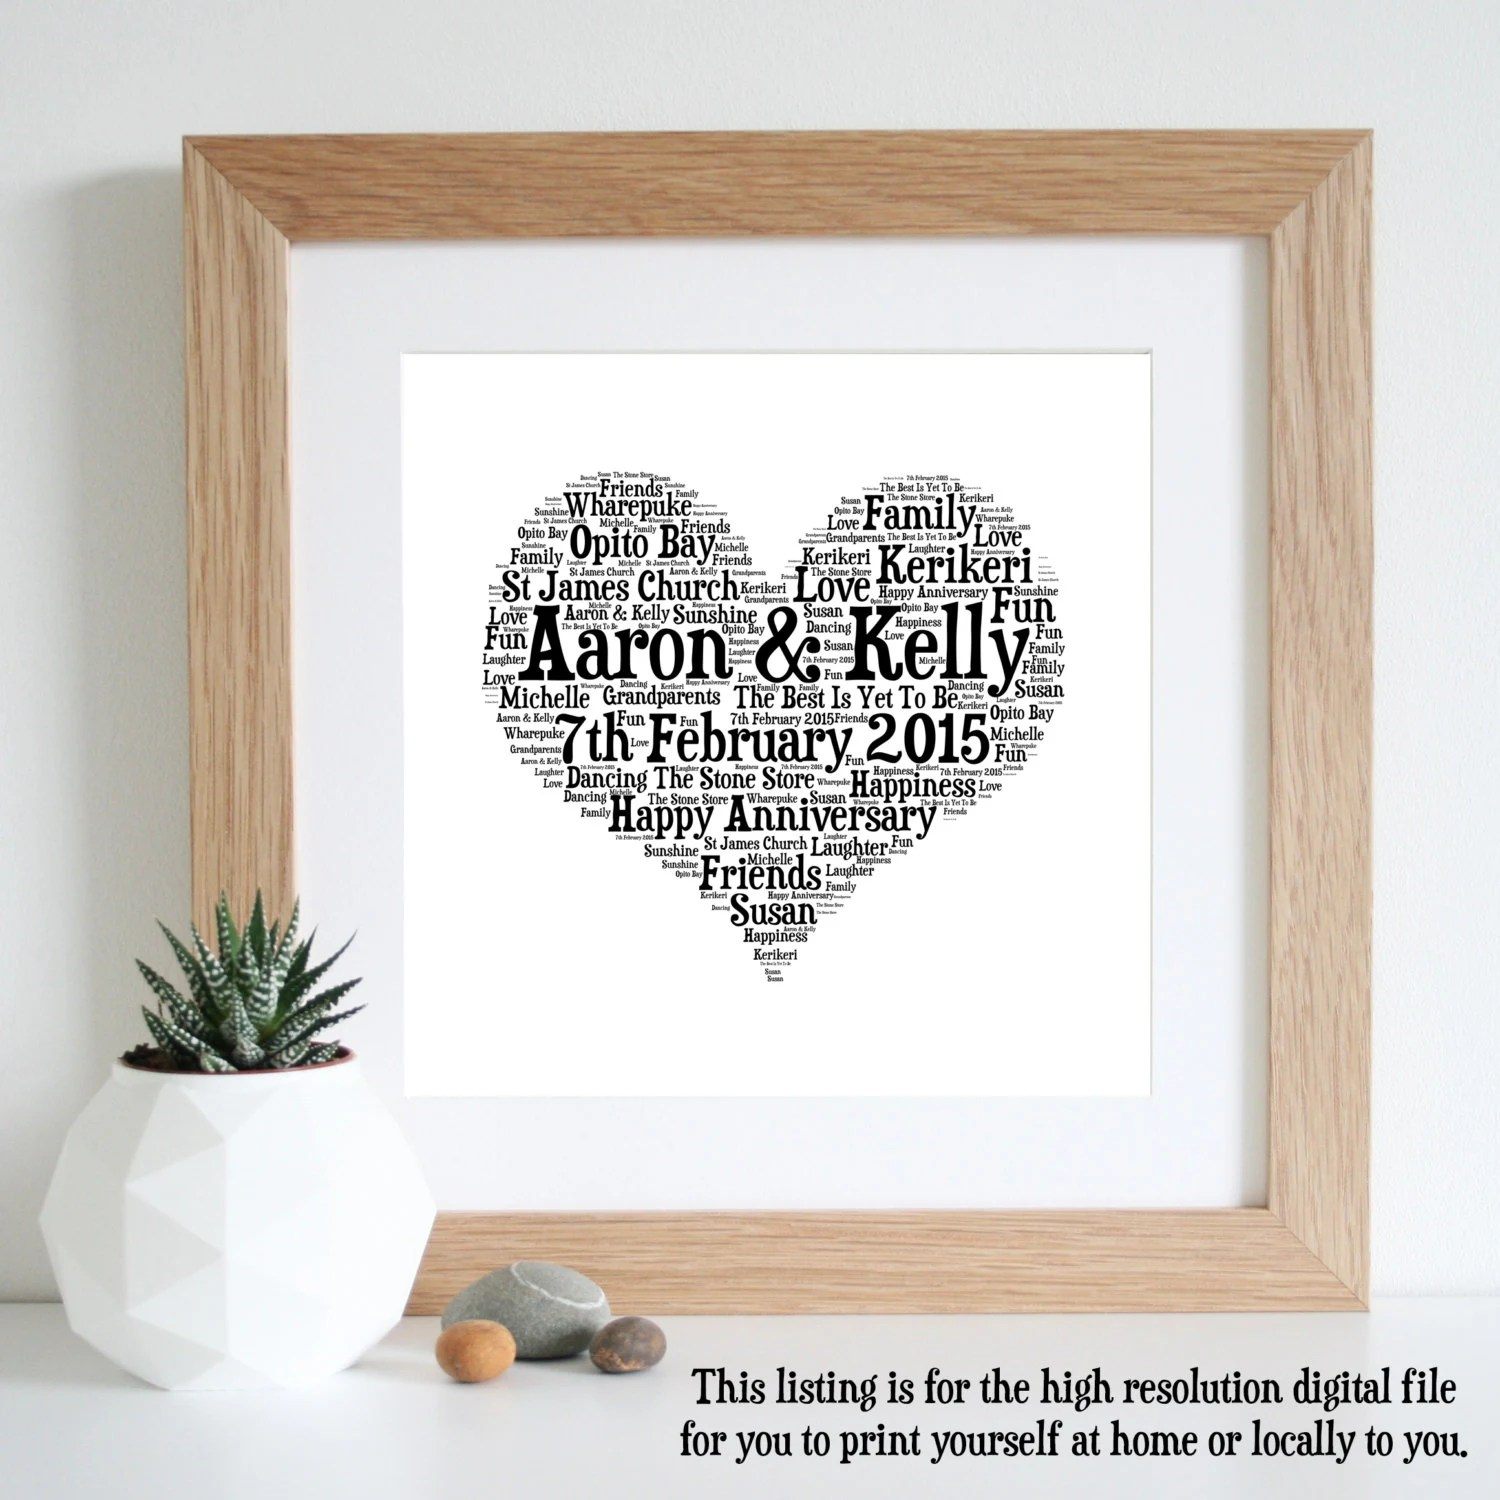 40th wedding anniversary traditional gift first wedding anniversary gift ideas traditional 1st wedding anniversary gifts 1st anniversary gift etsy word art paper 1 year